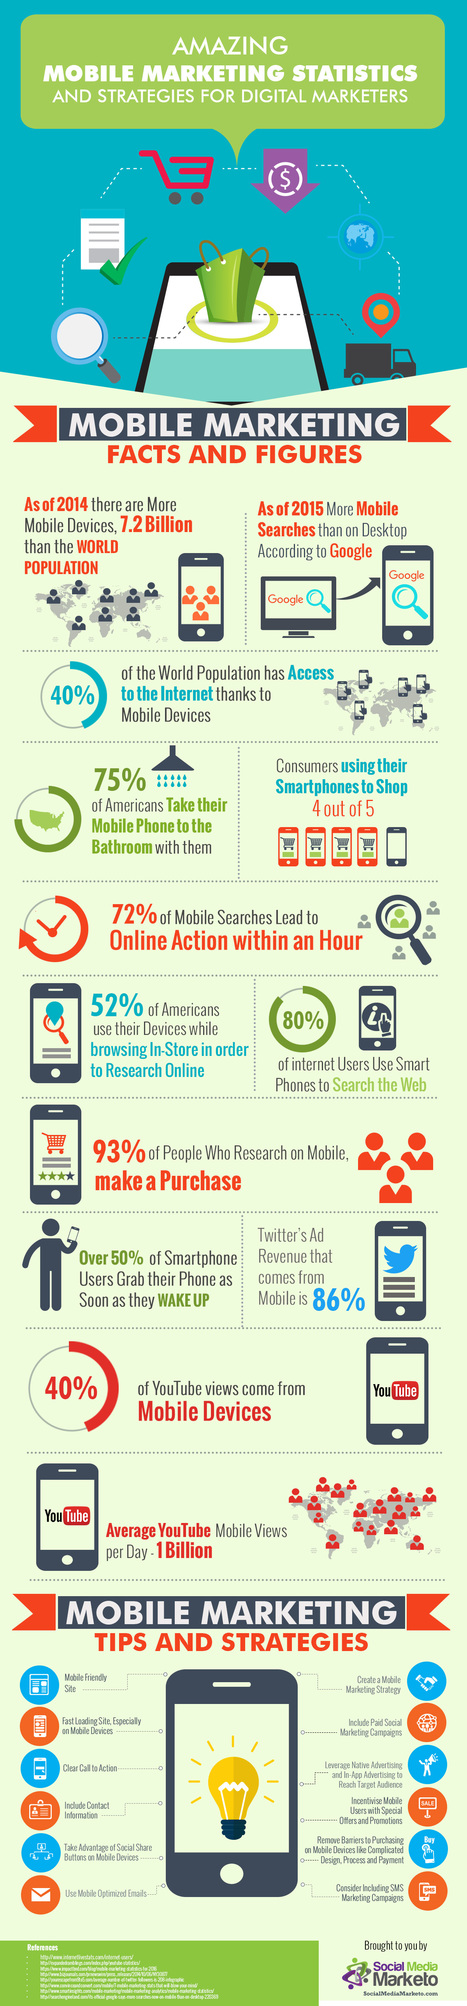 Amazing Mobile Marketing Strategy & Statistics for Digital Marketers #Infographic #mobilemarketing   MobileWeb   Scoop.it